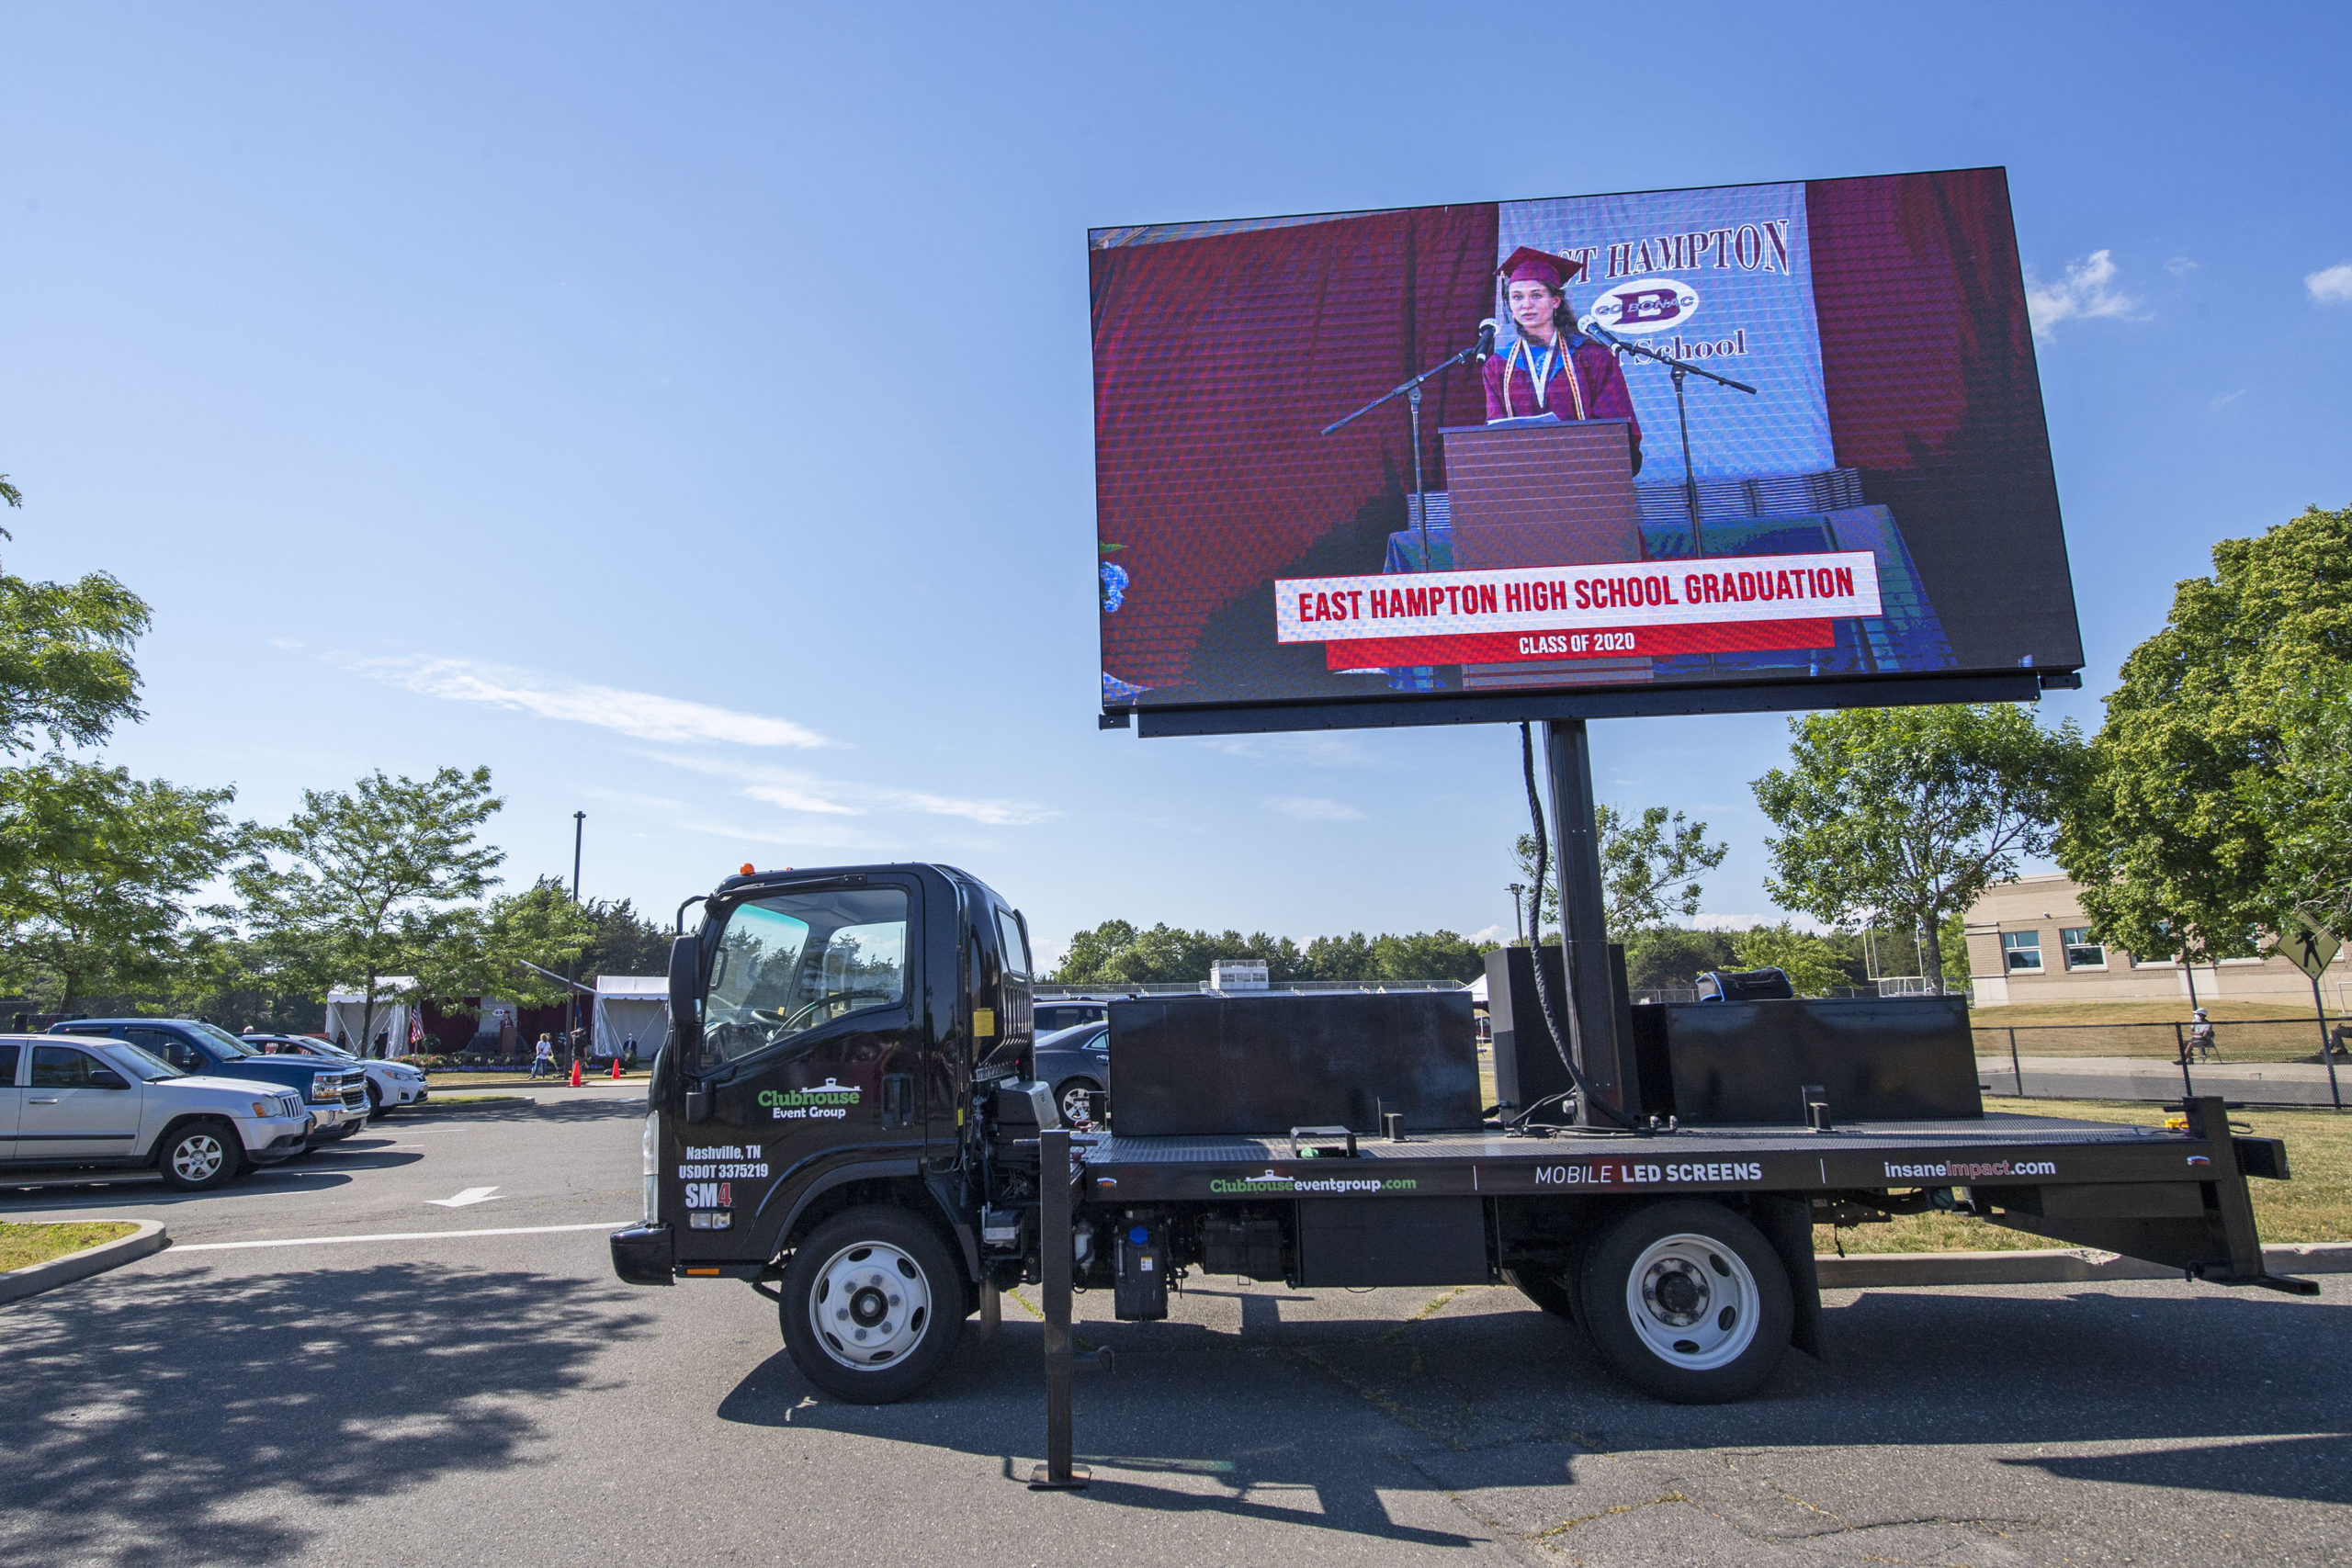 Families in their vehicles were able to watch on a mobile LED screen as East Hampton High School Senior Valedictorian Samantha Prince speaks during the 2020 graduation ceremony at the East Hampton High School on Friday.